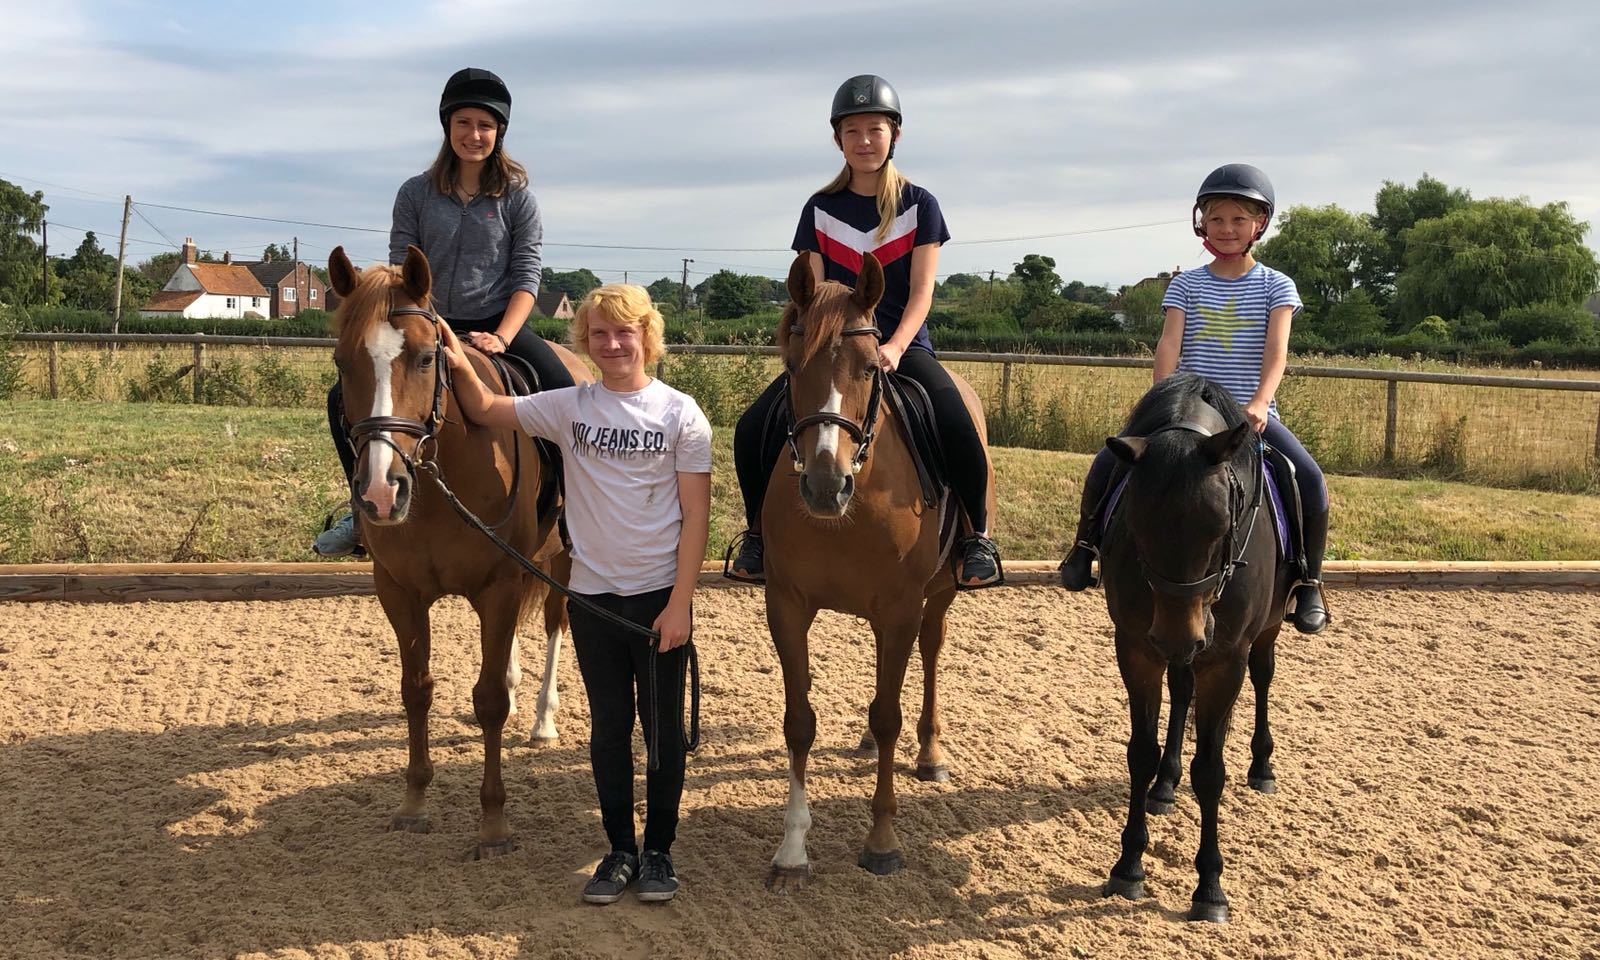 Horse Riding & Glamping